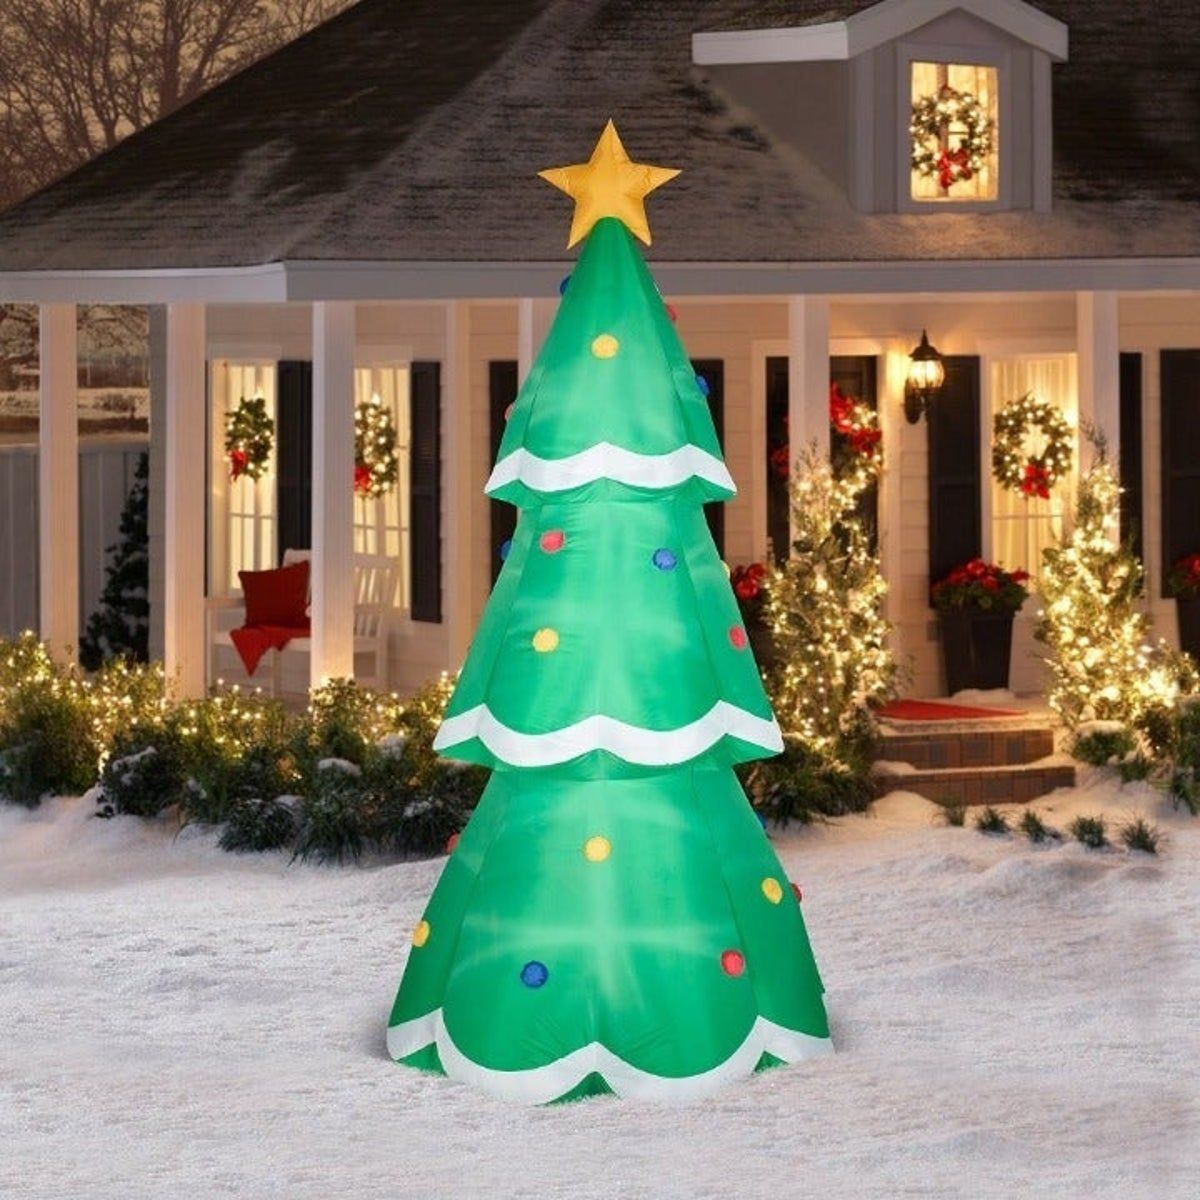 Inflatable 10 Christmas Tree By Gemmy Inflatable Christmas Decorations Inflatable Christmas Tree Outdoor Christmas Decorations